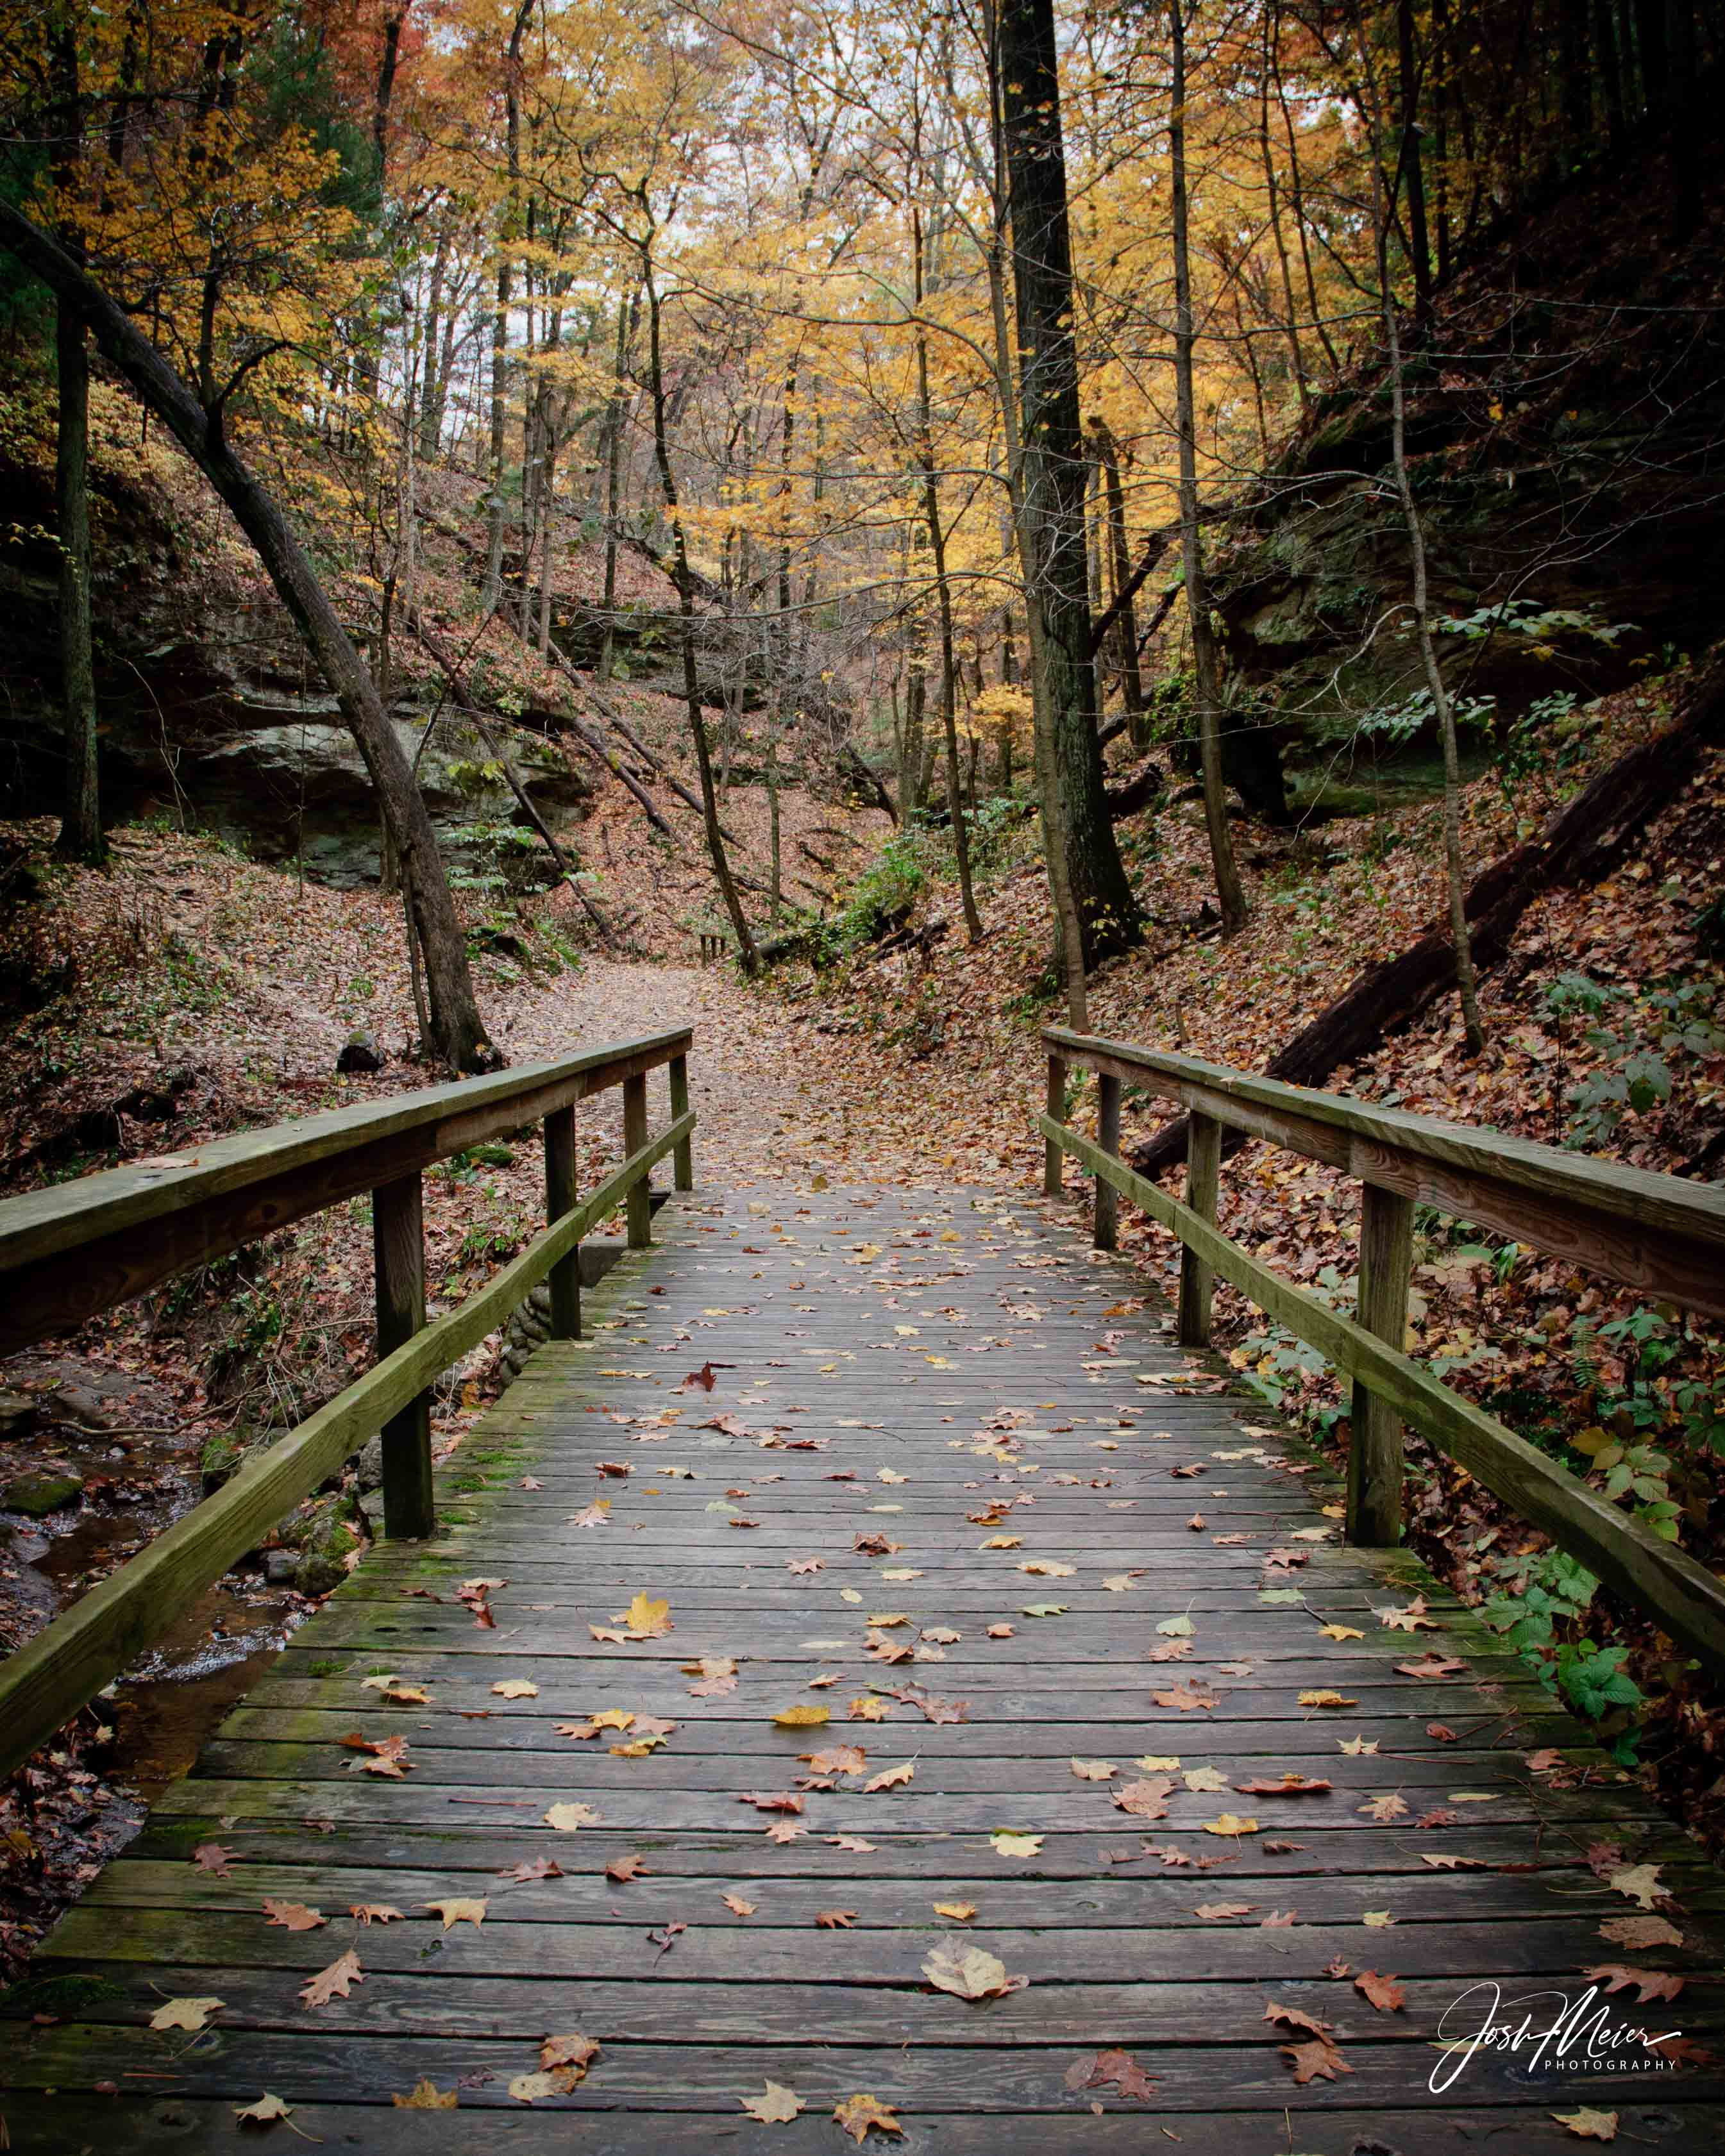 Fallen leaves blanket the ground in Wildcat Den State Park near Muscatine.